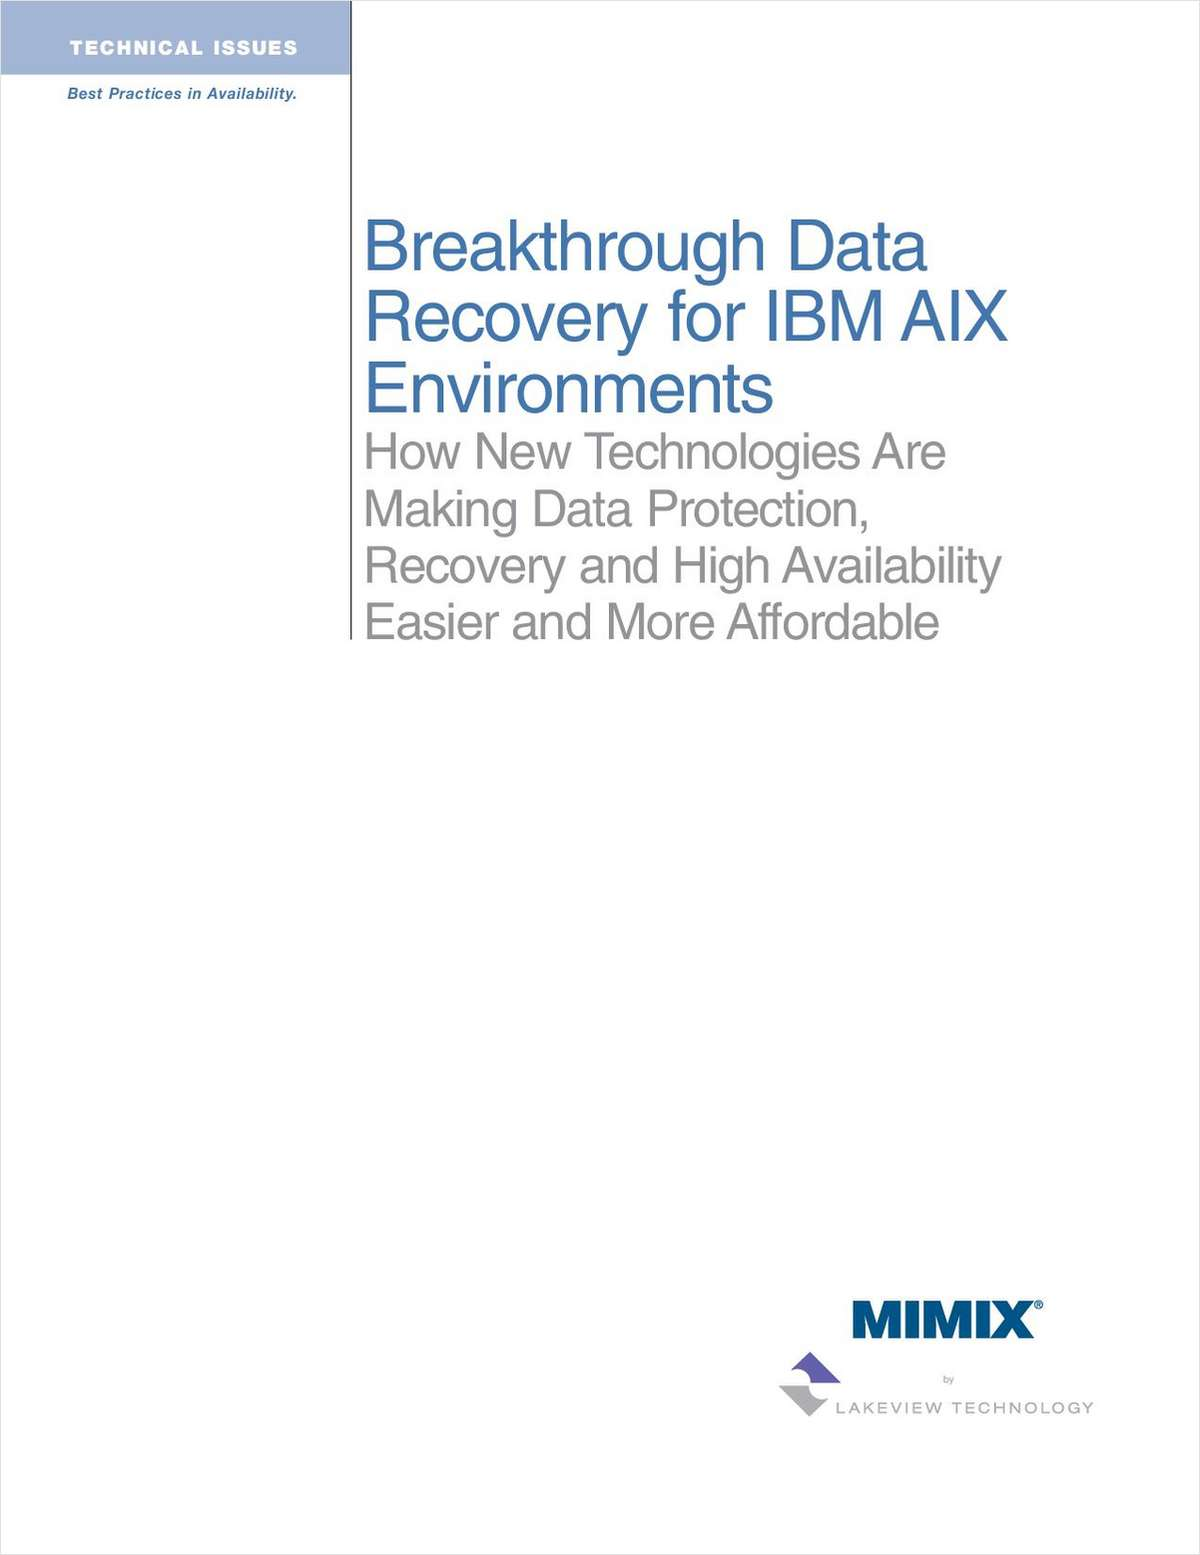 Breakthrough Data Recovery for IBM AIX Environments